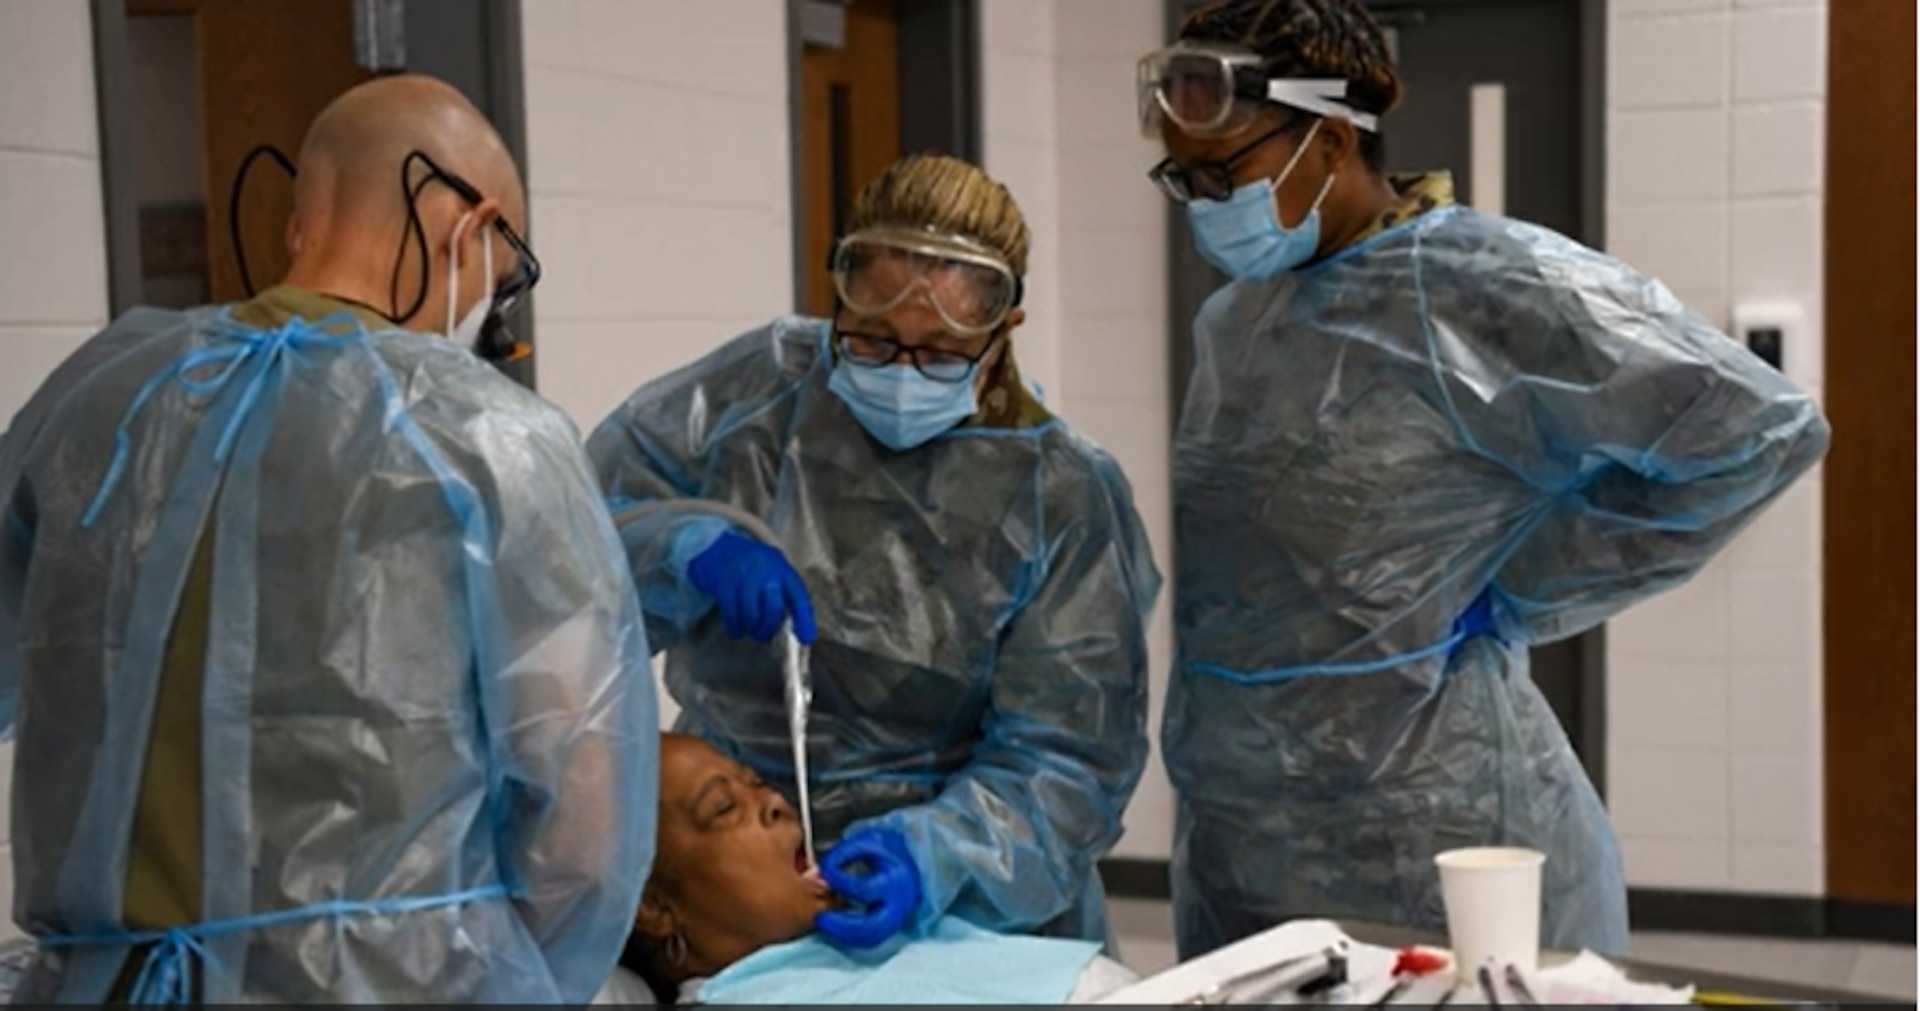 Five members of the 413th Aeromedical Staging Squadron participated in the 2021 East Central Georgia Medical Innovative Readiness Training (IRT) mission. Operating from four locations, they teamed with other Reserve Citizen Airmen and service members from Navy Reserve, Army Reserve, Marine Corps Reserve, Air National Guard and active-duty Army medical units to provide no-cost health services to communities within East Central Georgia between June 9 to June 17. (U.S. Air Force video by Jamal D. Sutter)